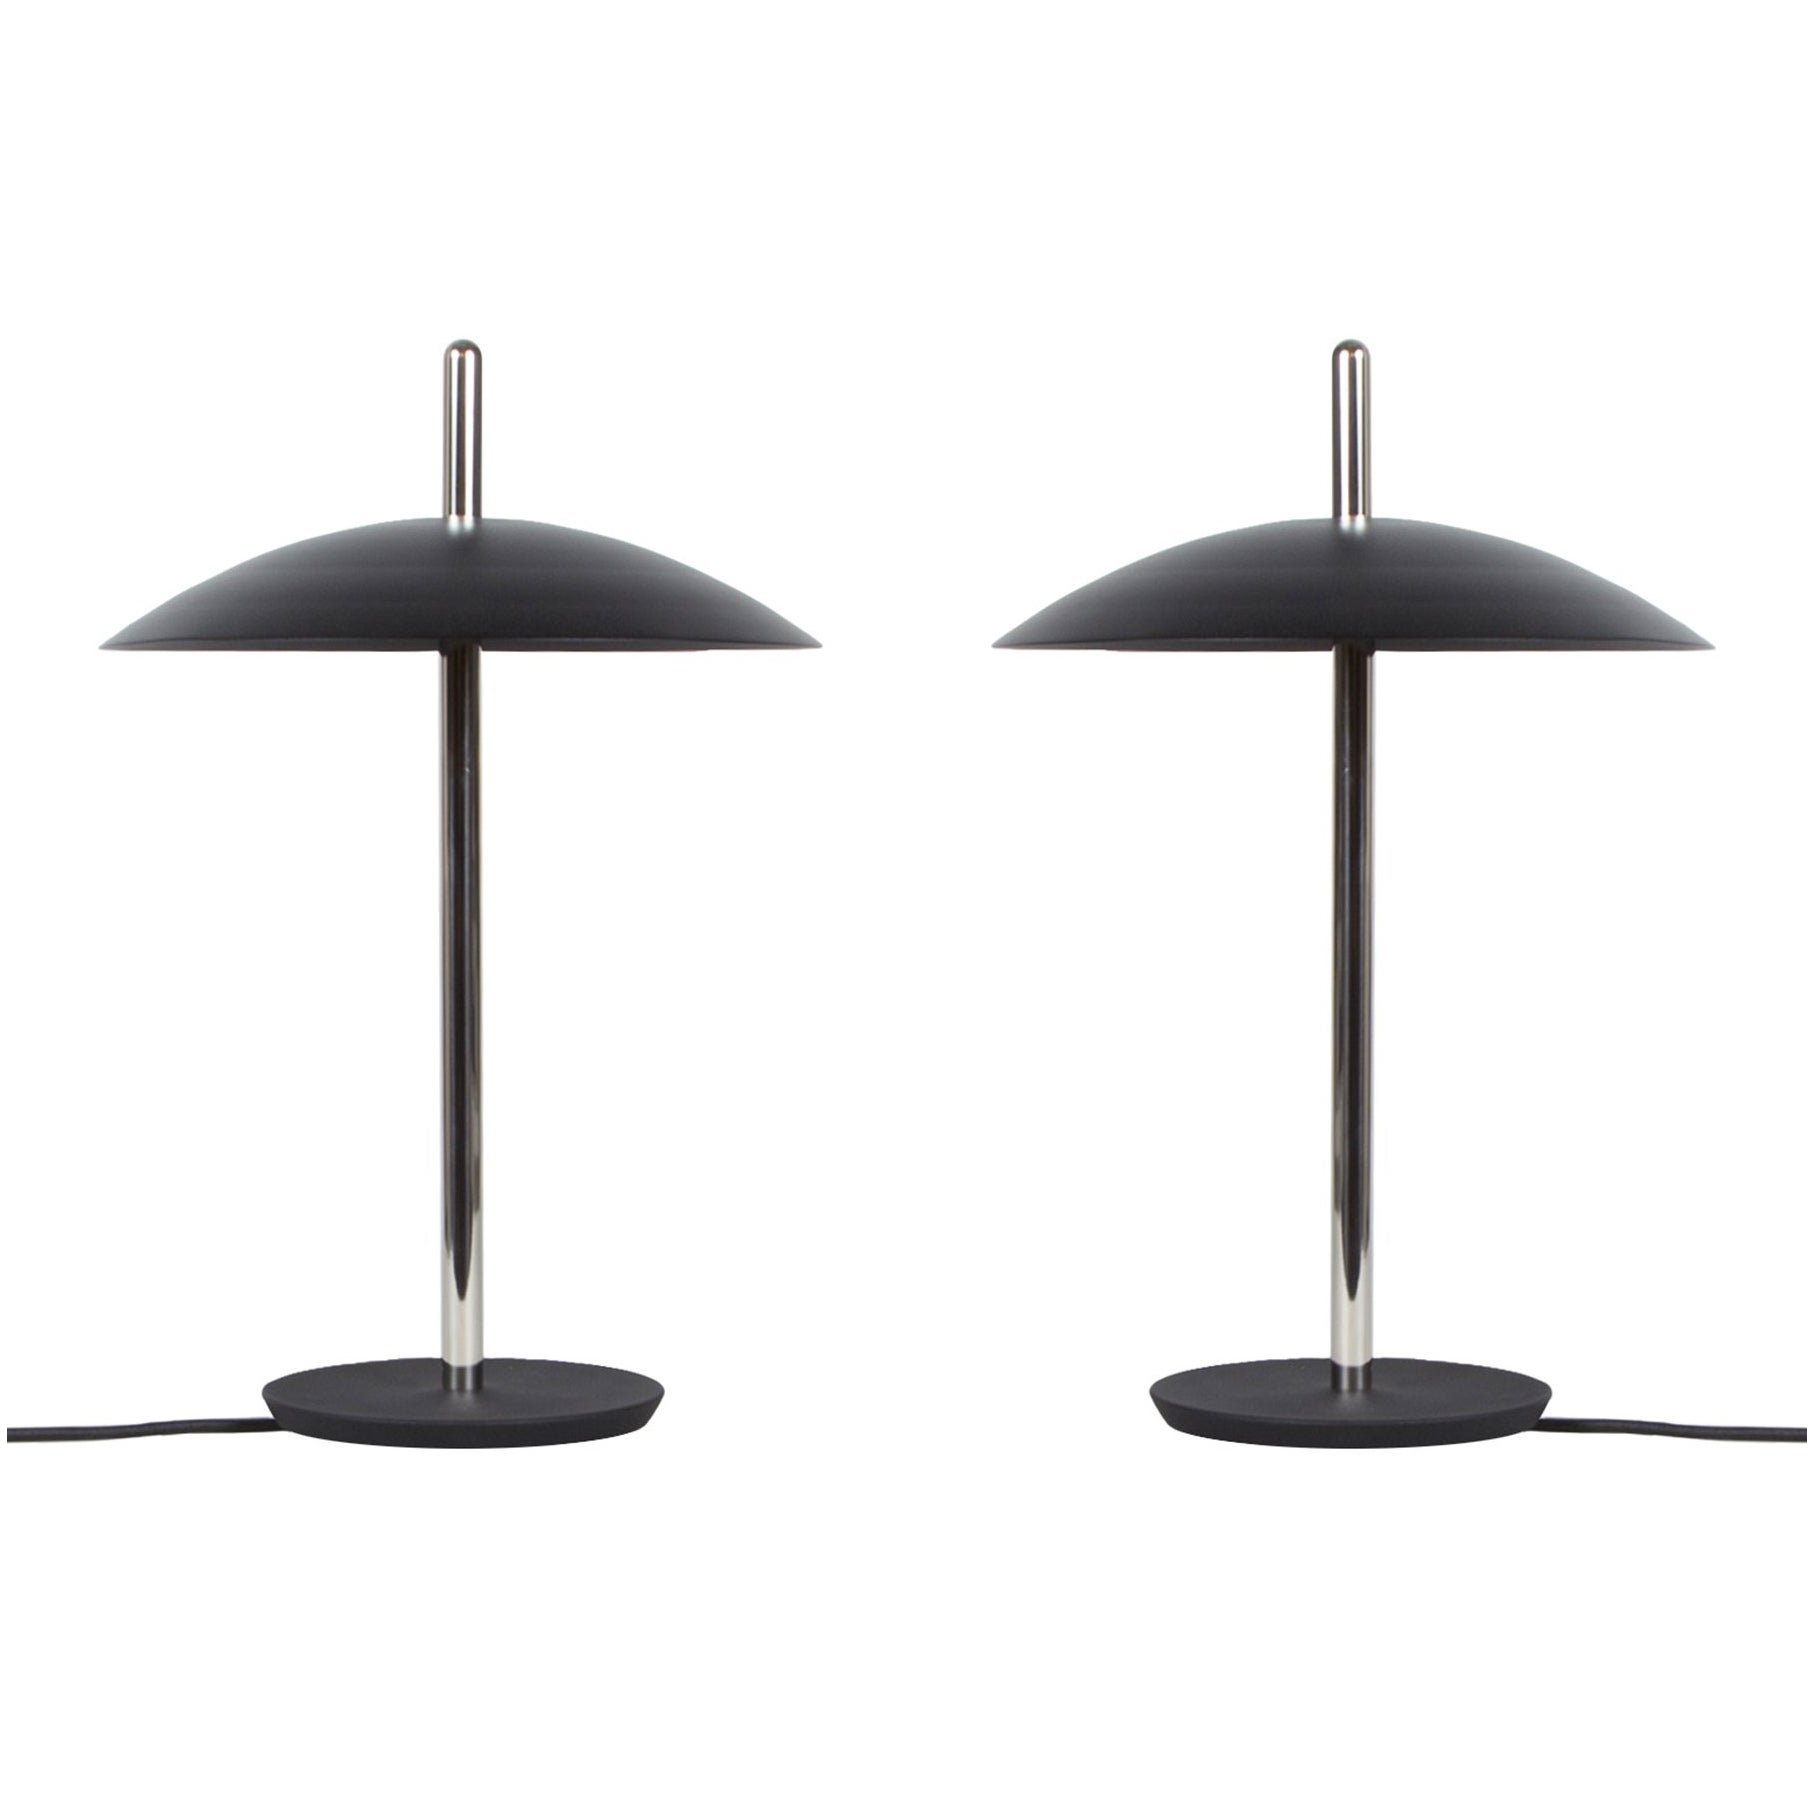 Customizable Pair of Signal Table Lamps from Souda, Black/Nickel, Made to Order